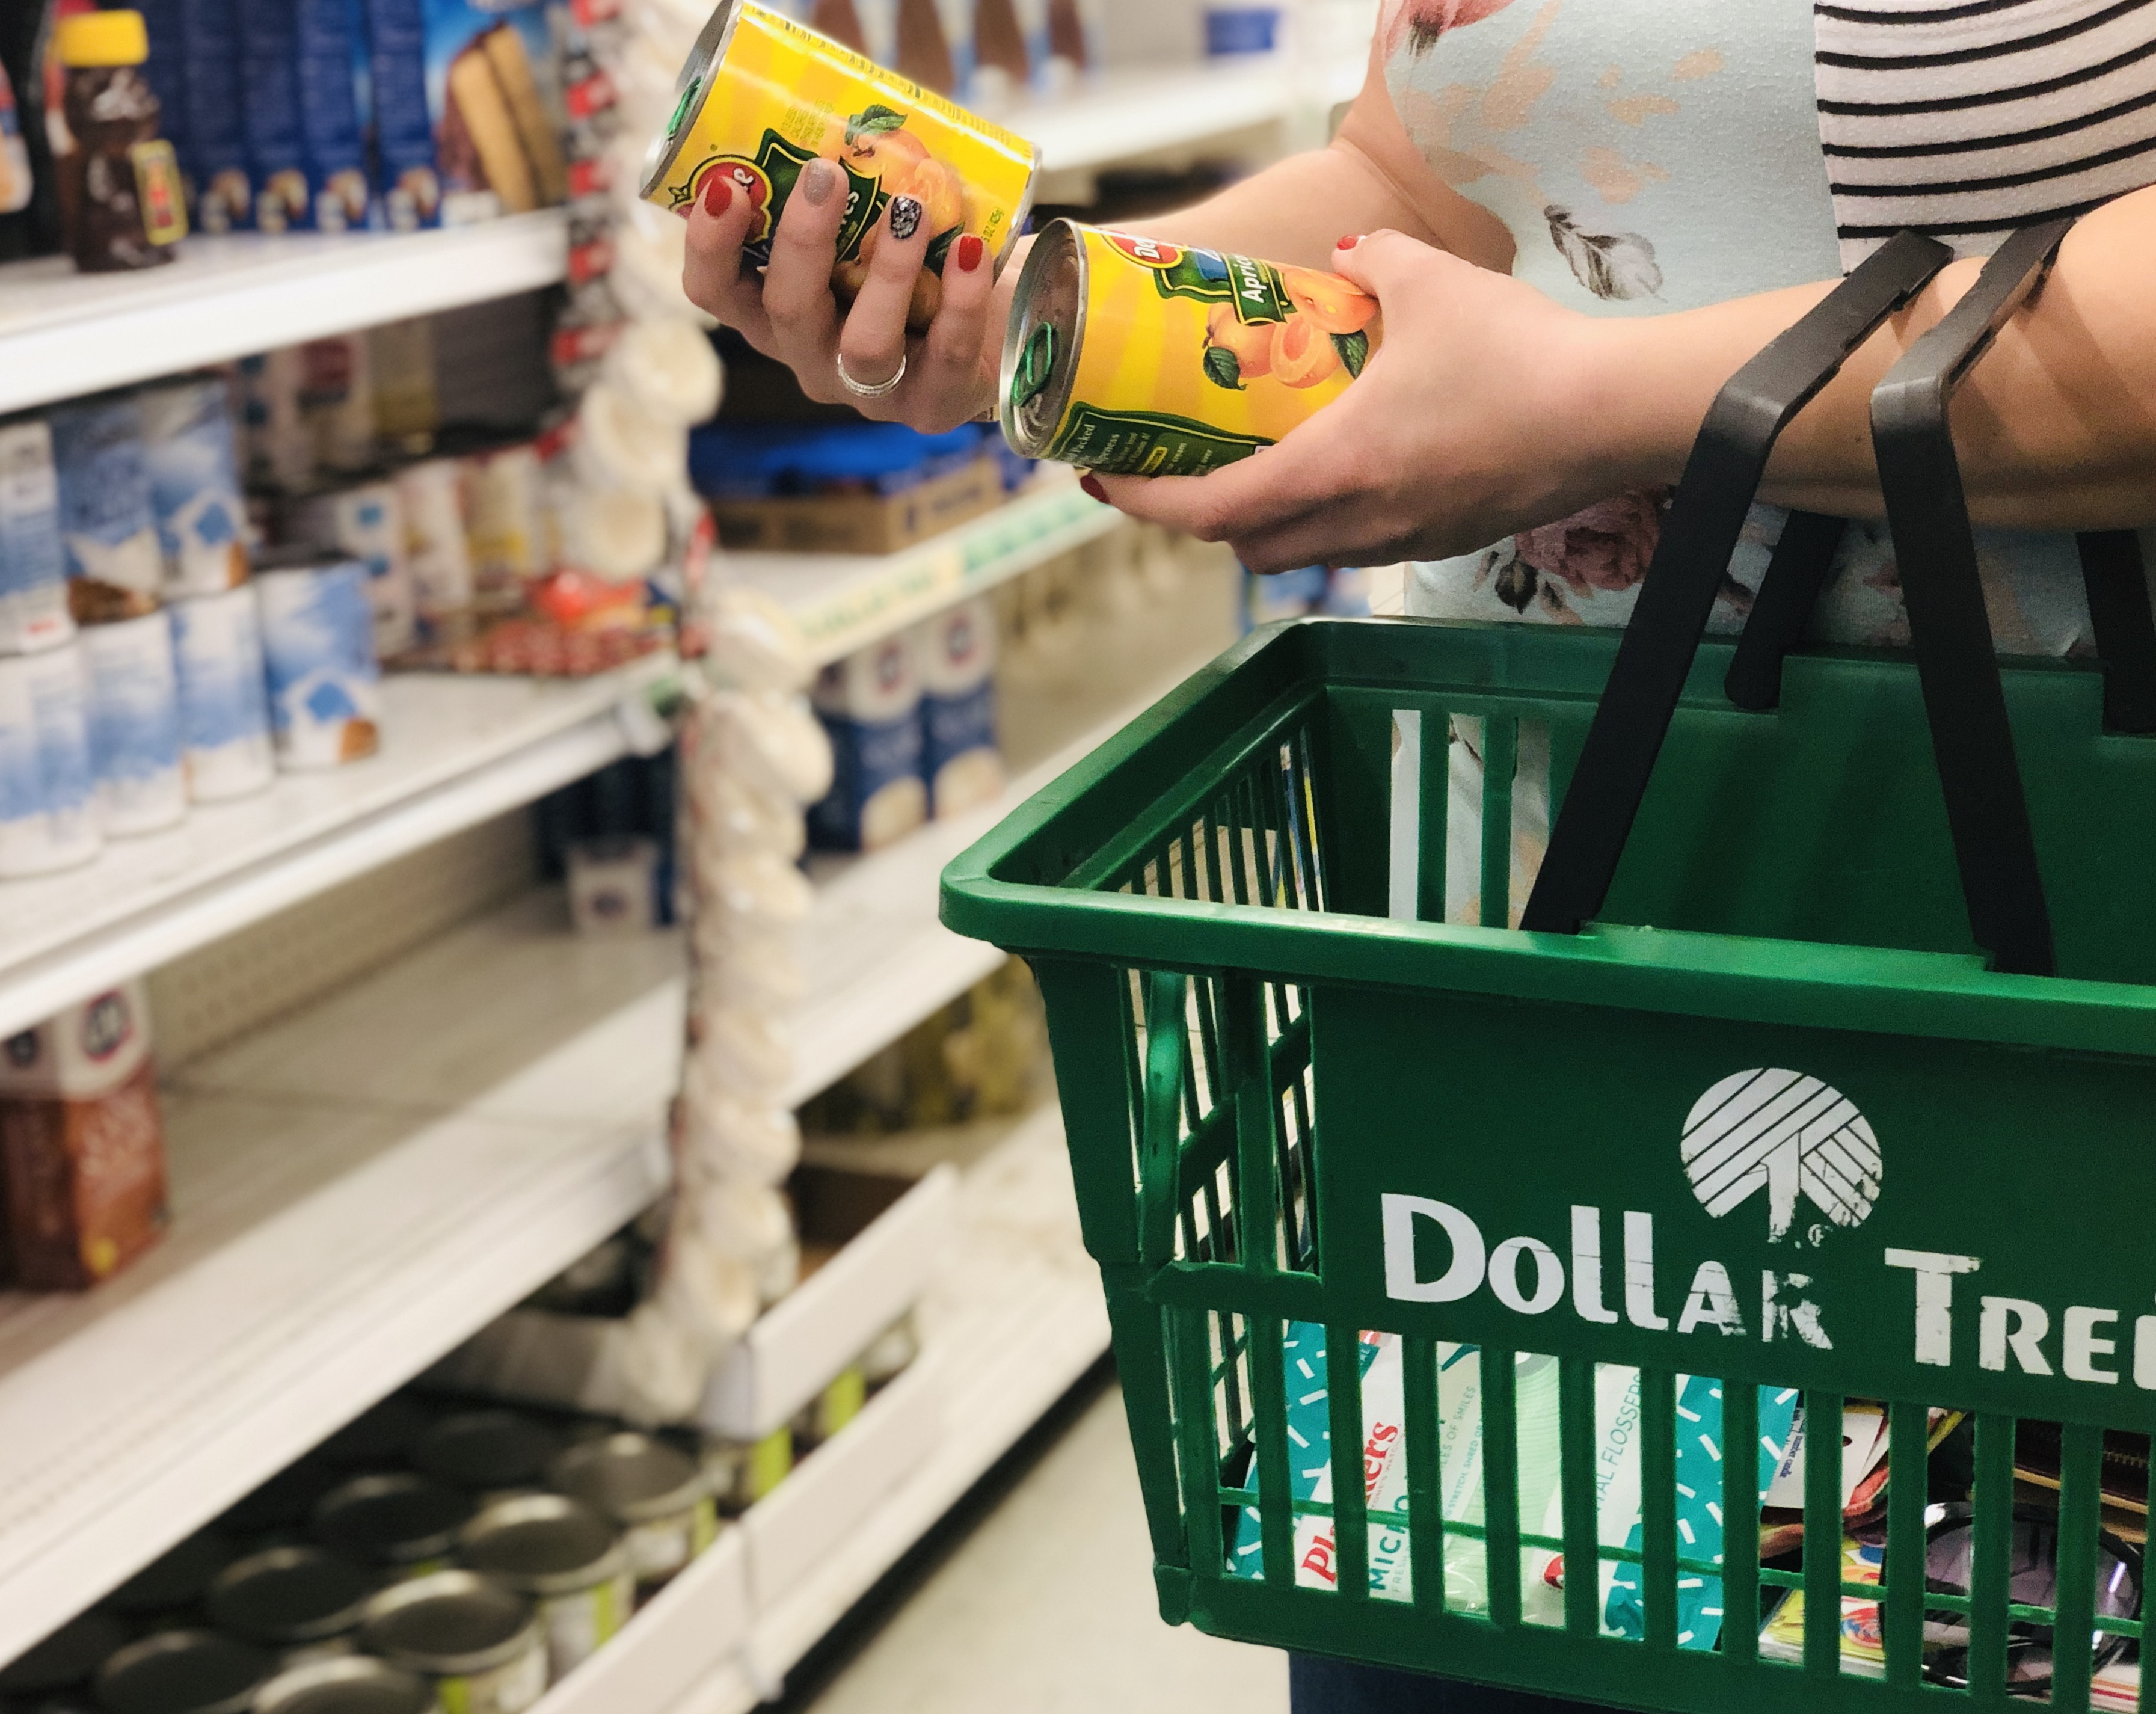 Dollar Tree Coupons - The Krazy Coupon Lady